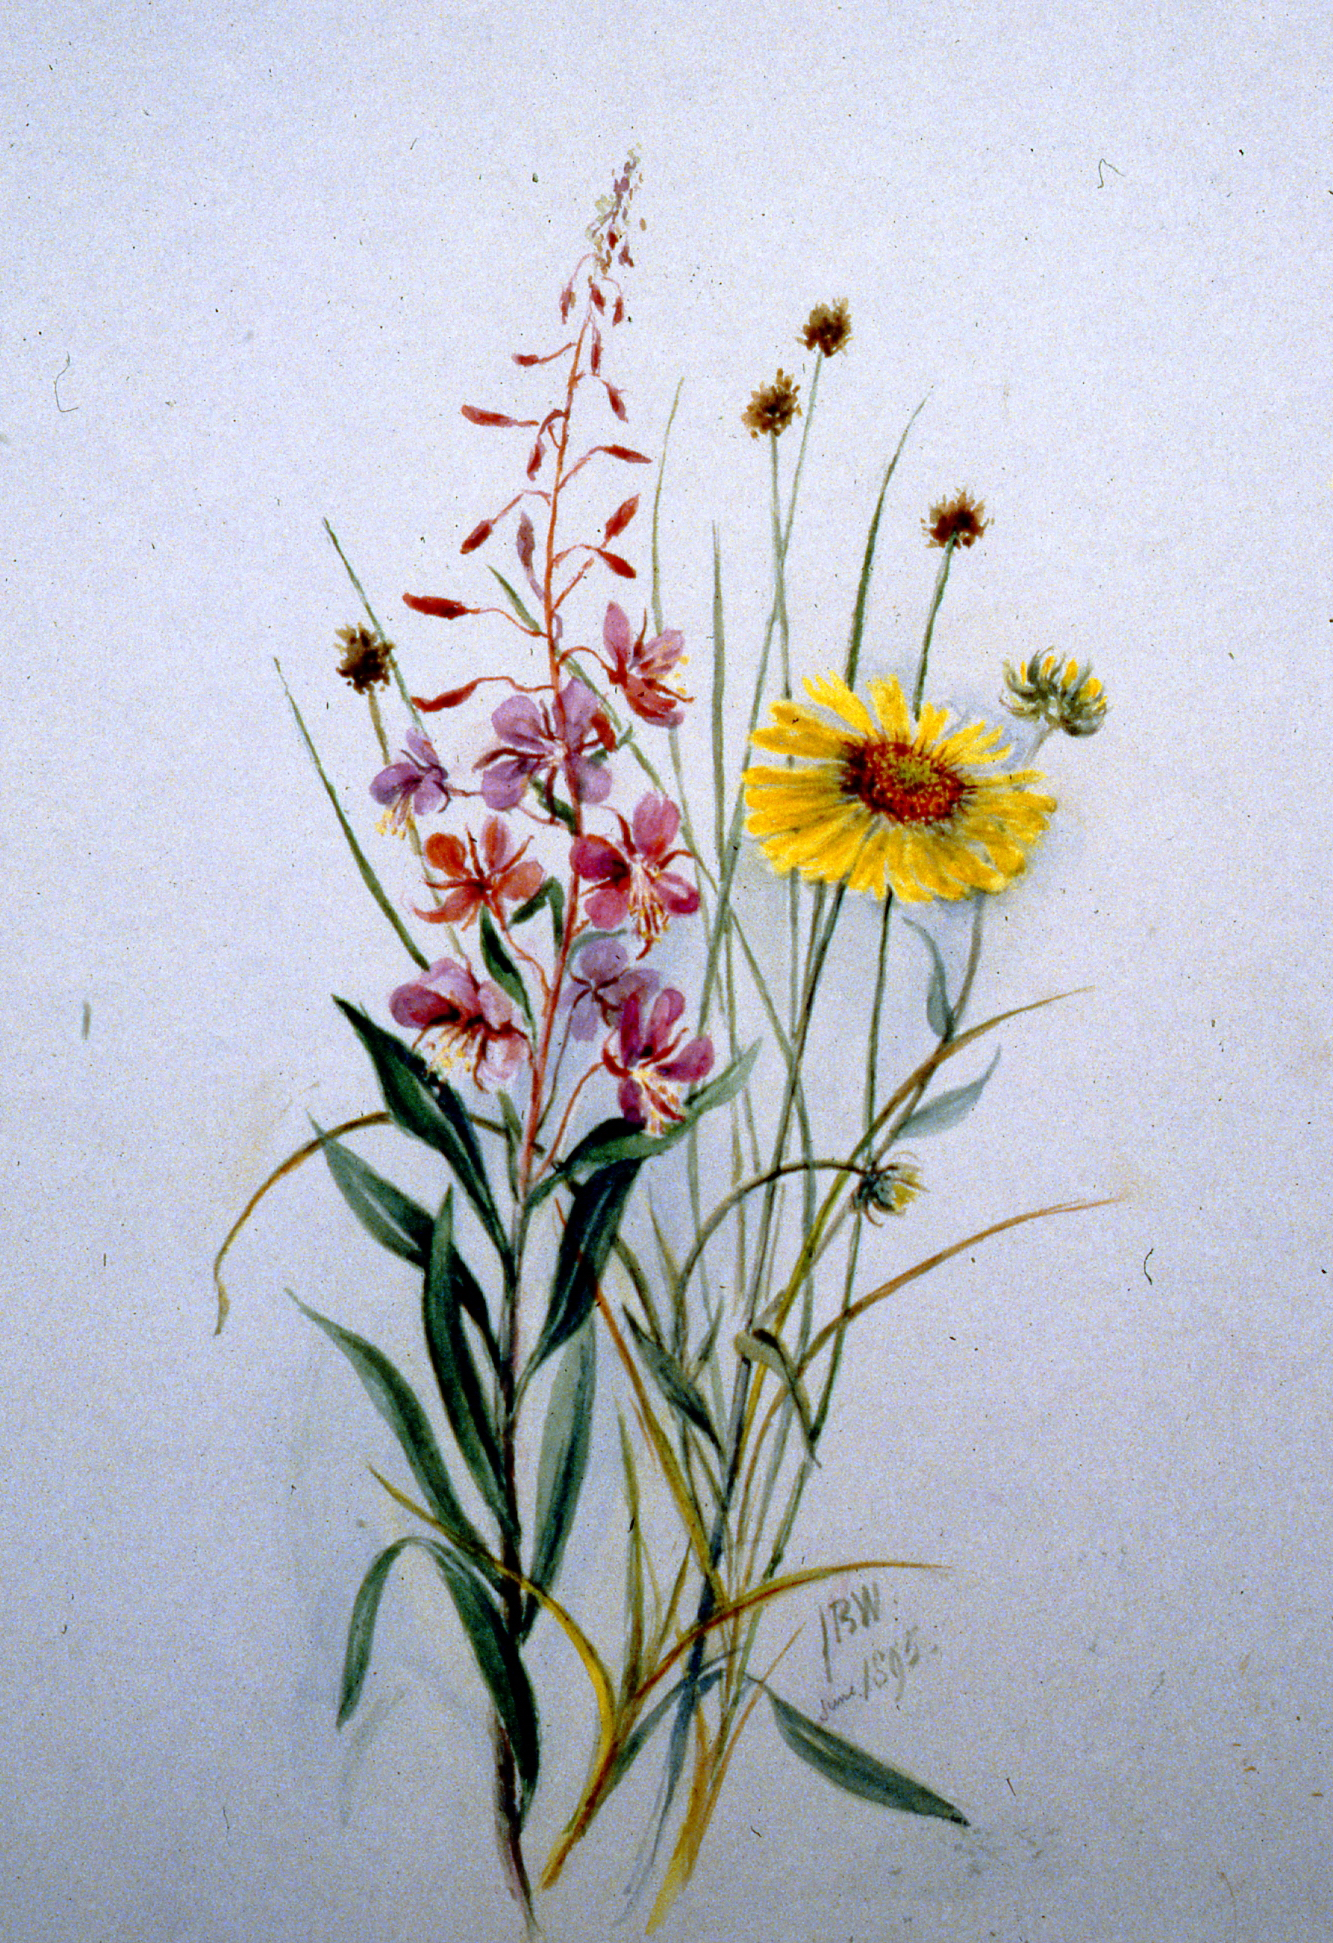 Untitled (Fireweed, Sedse, Brown-eyed Susan), 1895, Julia Bullock Webster, watercolour on paper, 35.3 x 25.3 cm, 1983.02.24.